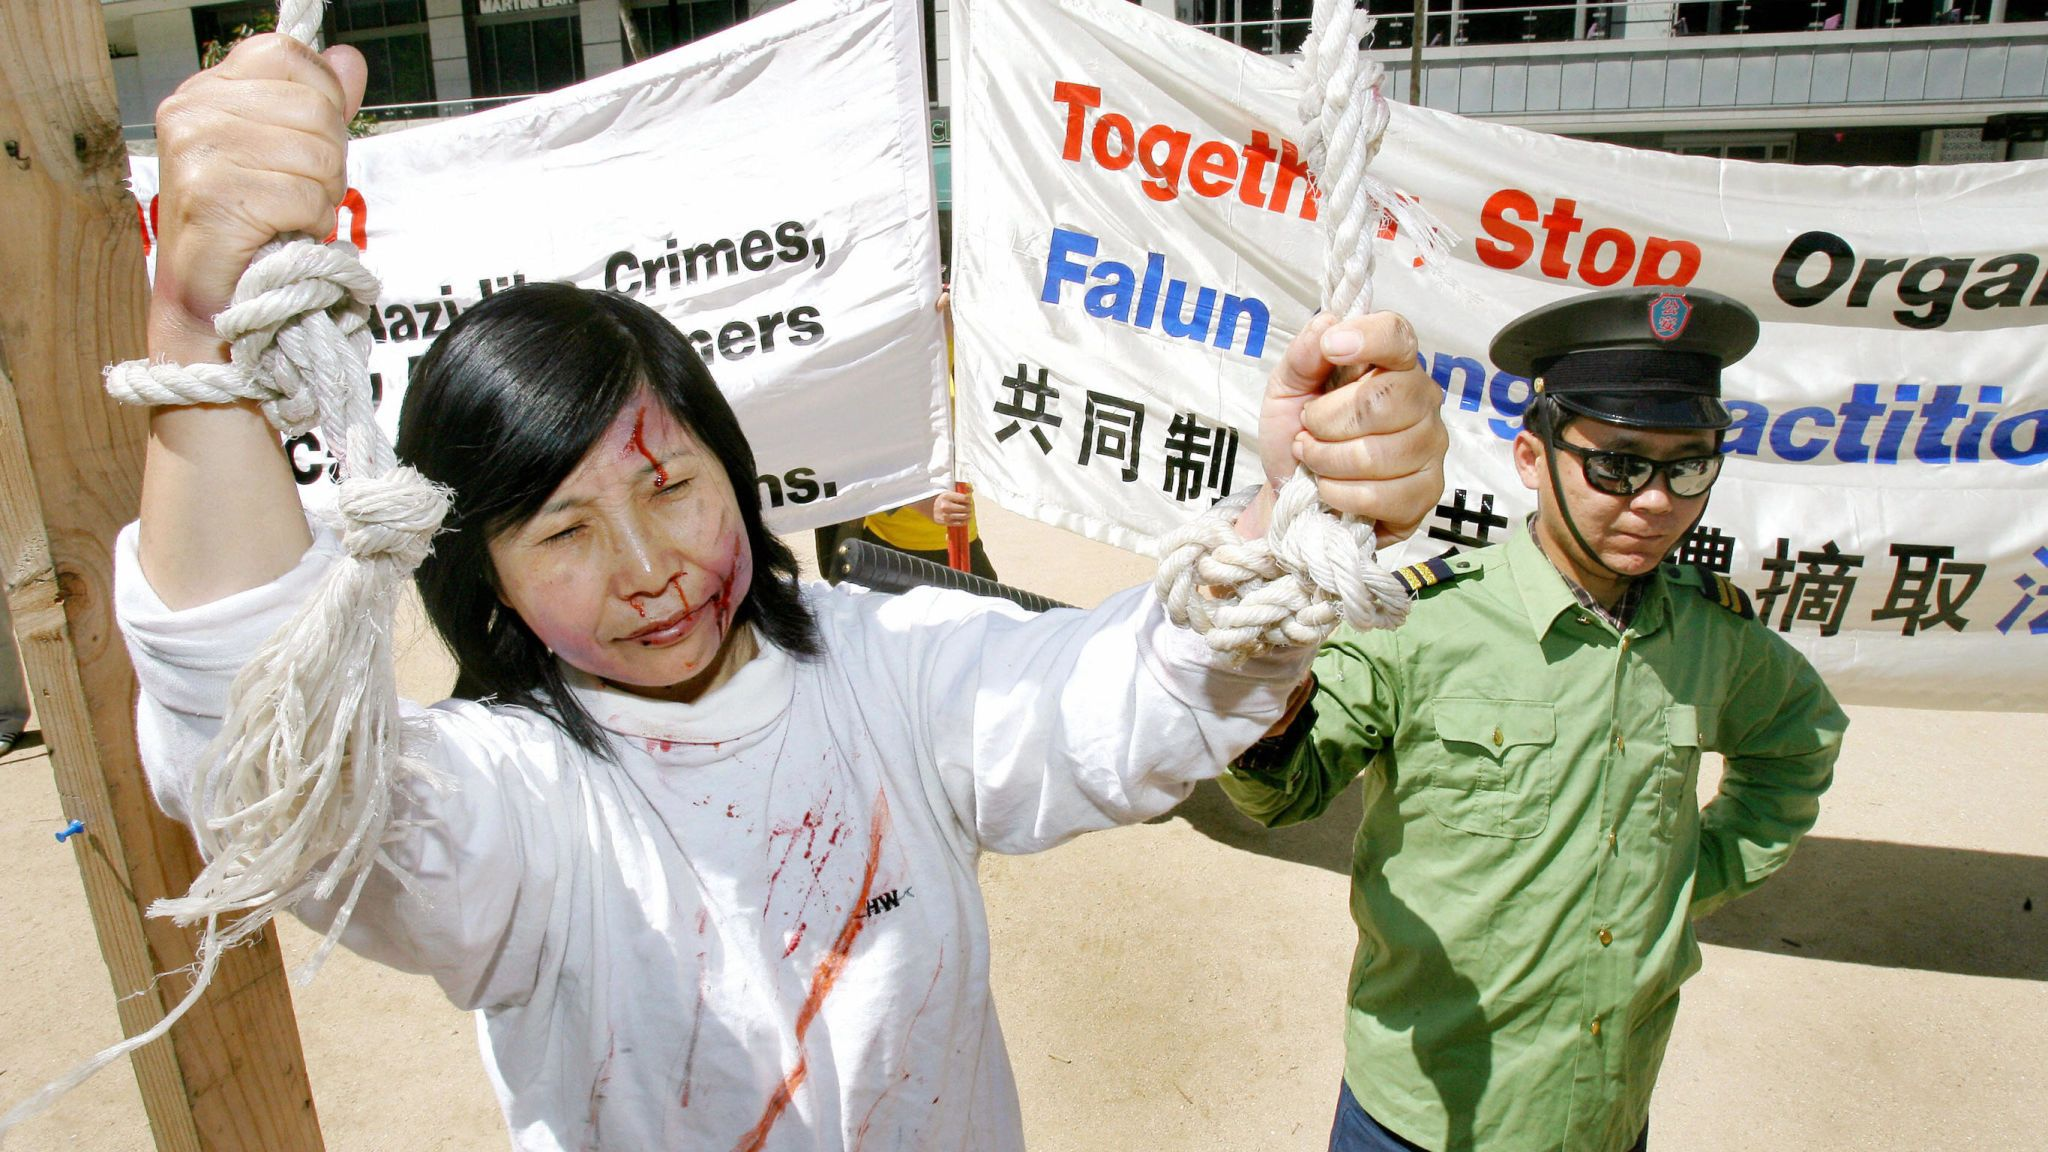 Falun Gong members have protested around the world against the harvesting of organs